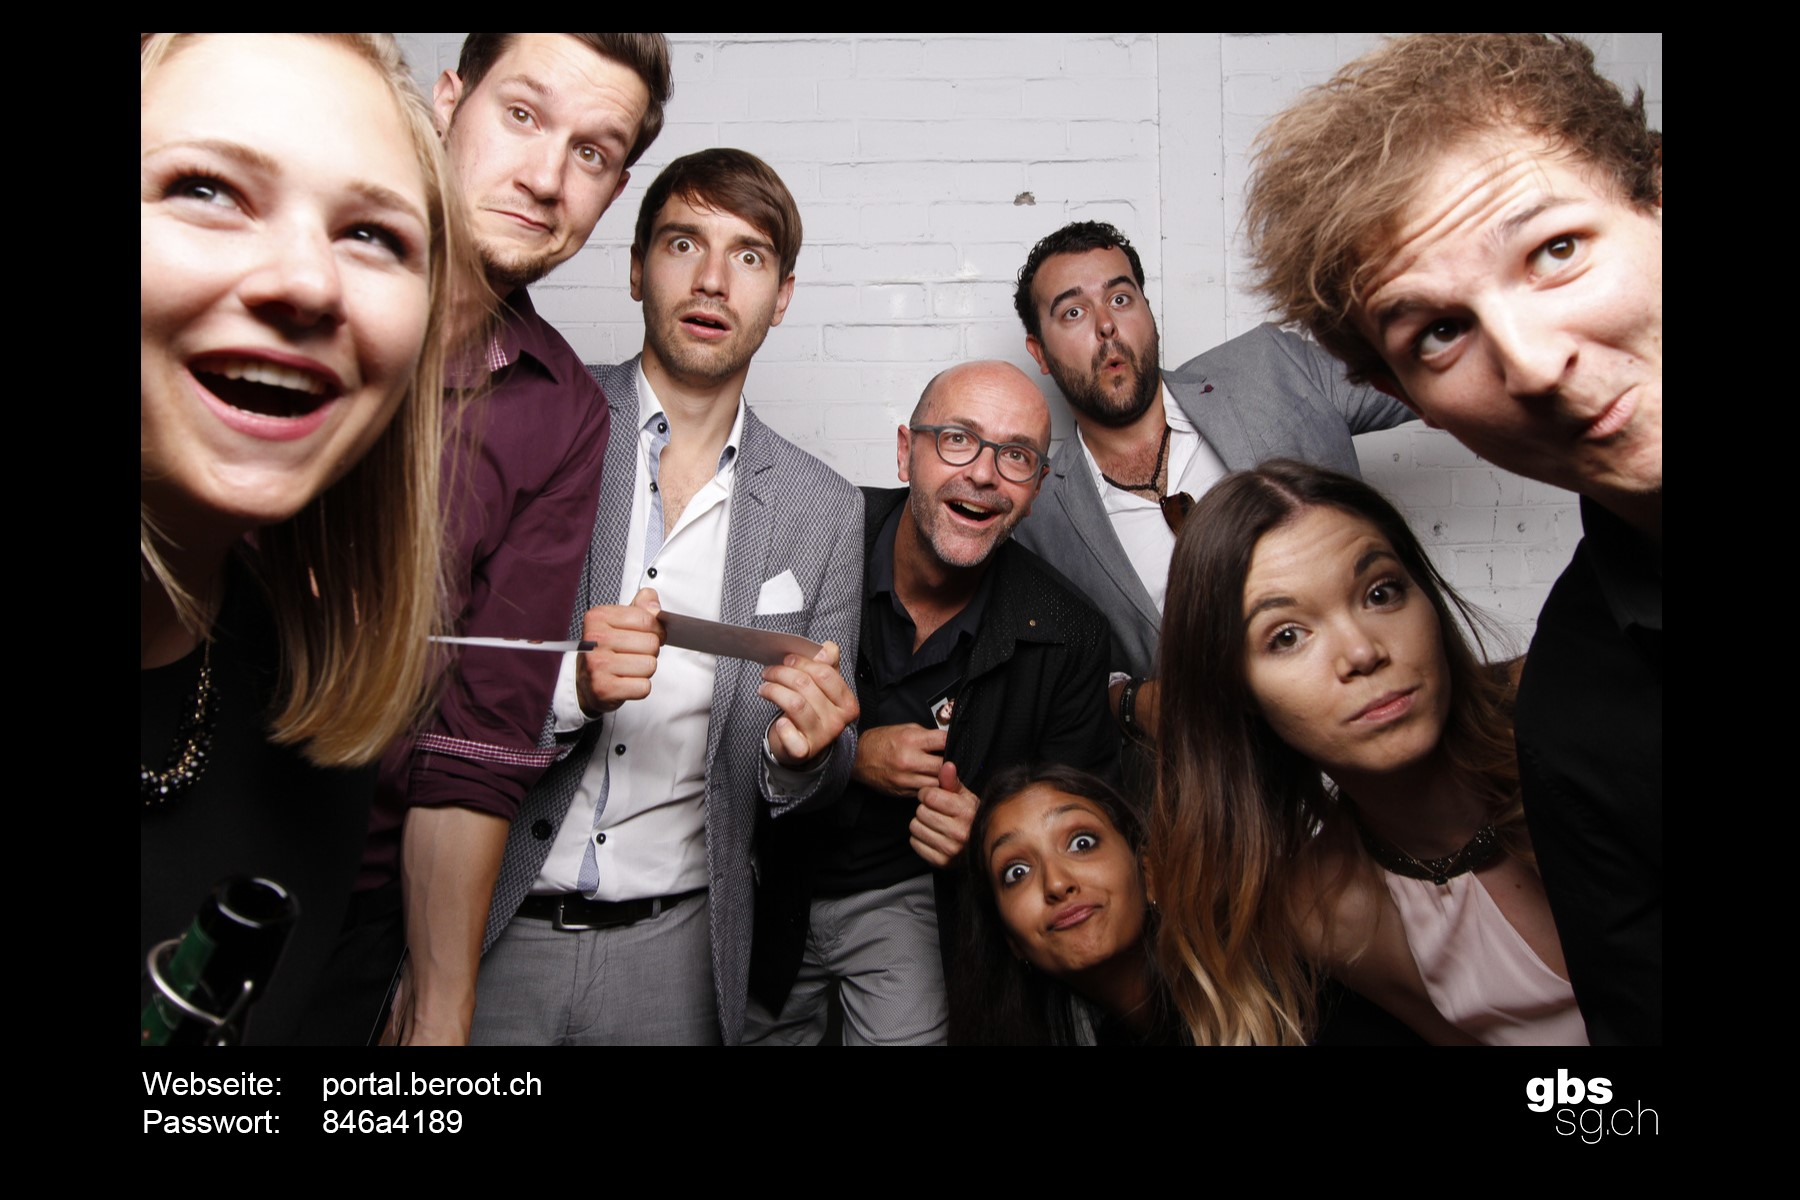 P2018-0039KH_Photobooth_finale_2018_0159